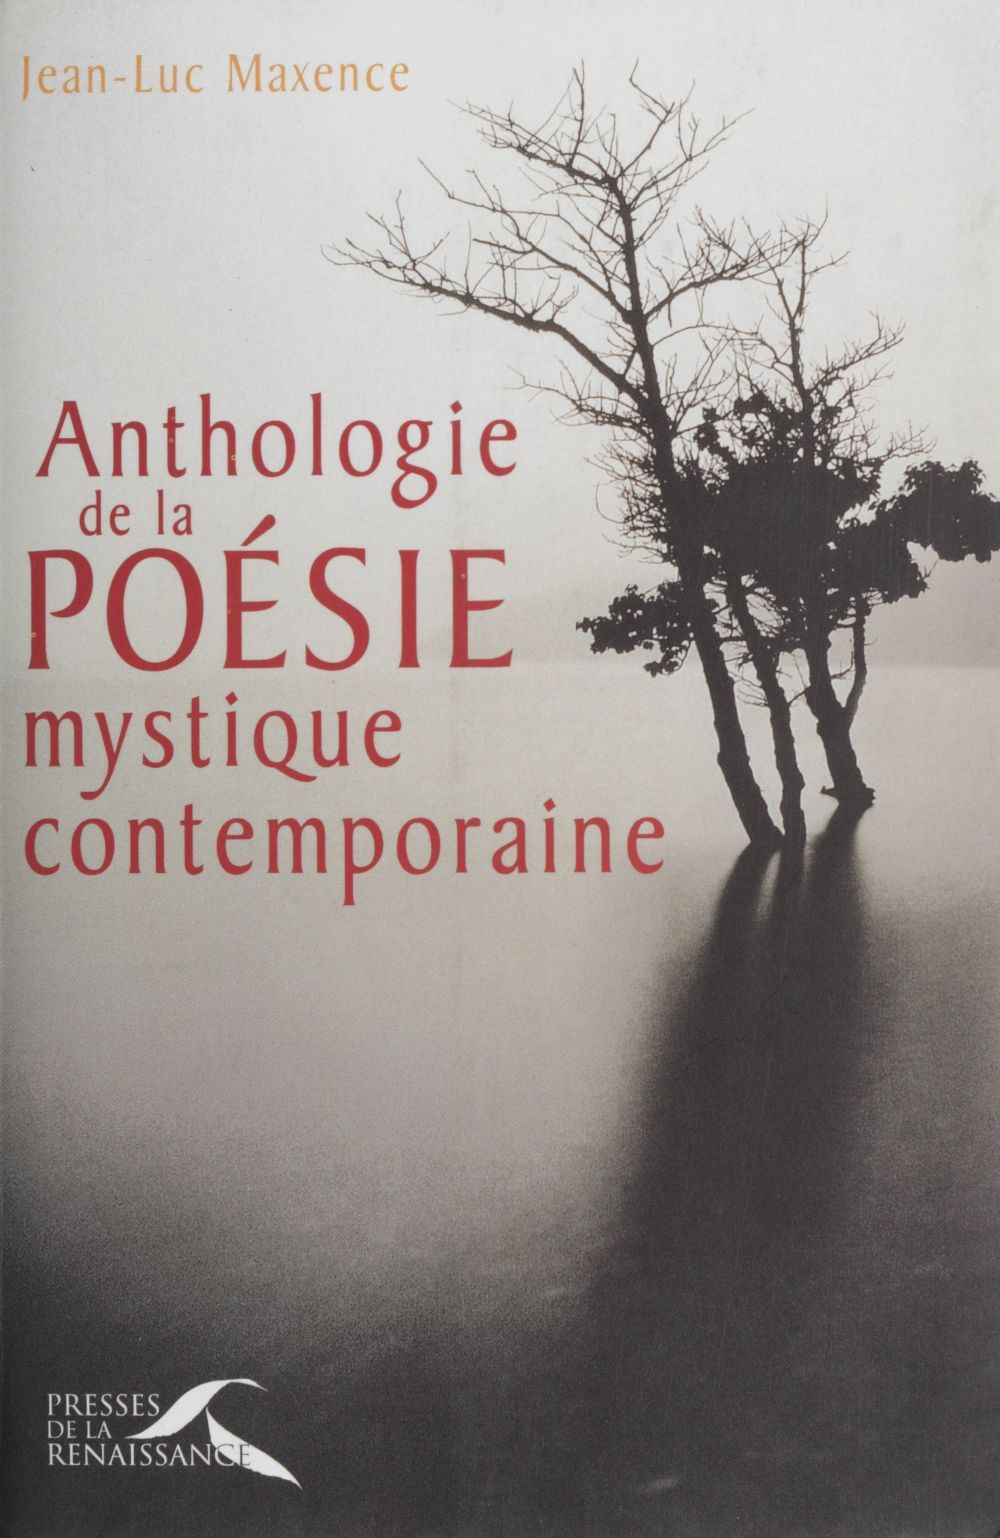 Anthologie de la poésie mystique contemporaine